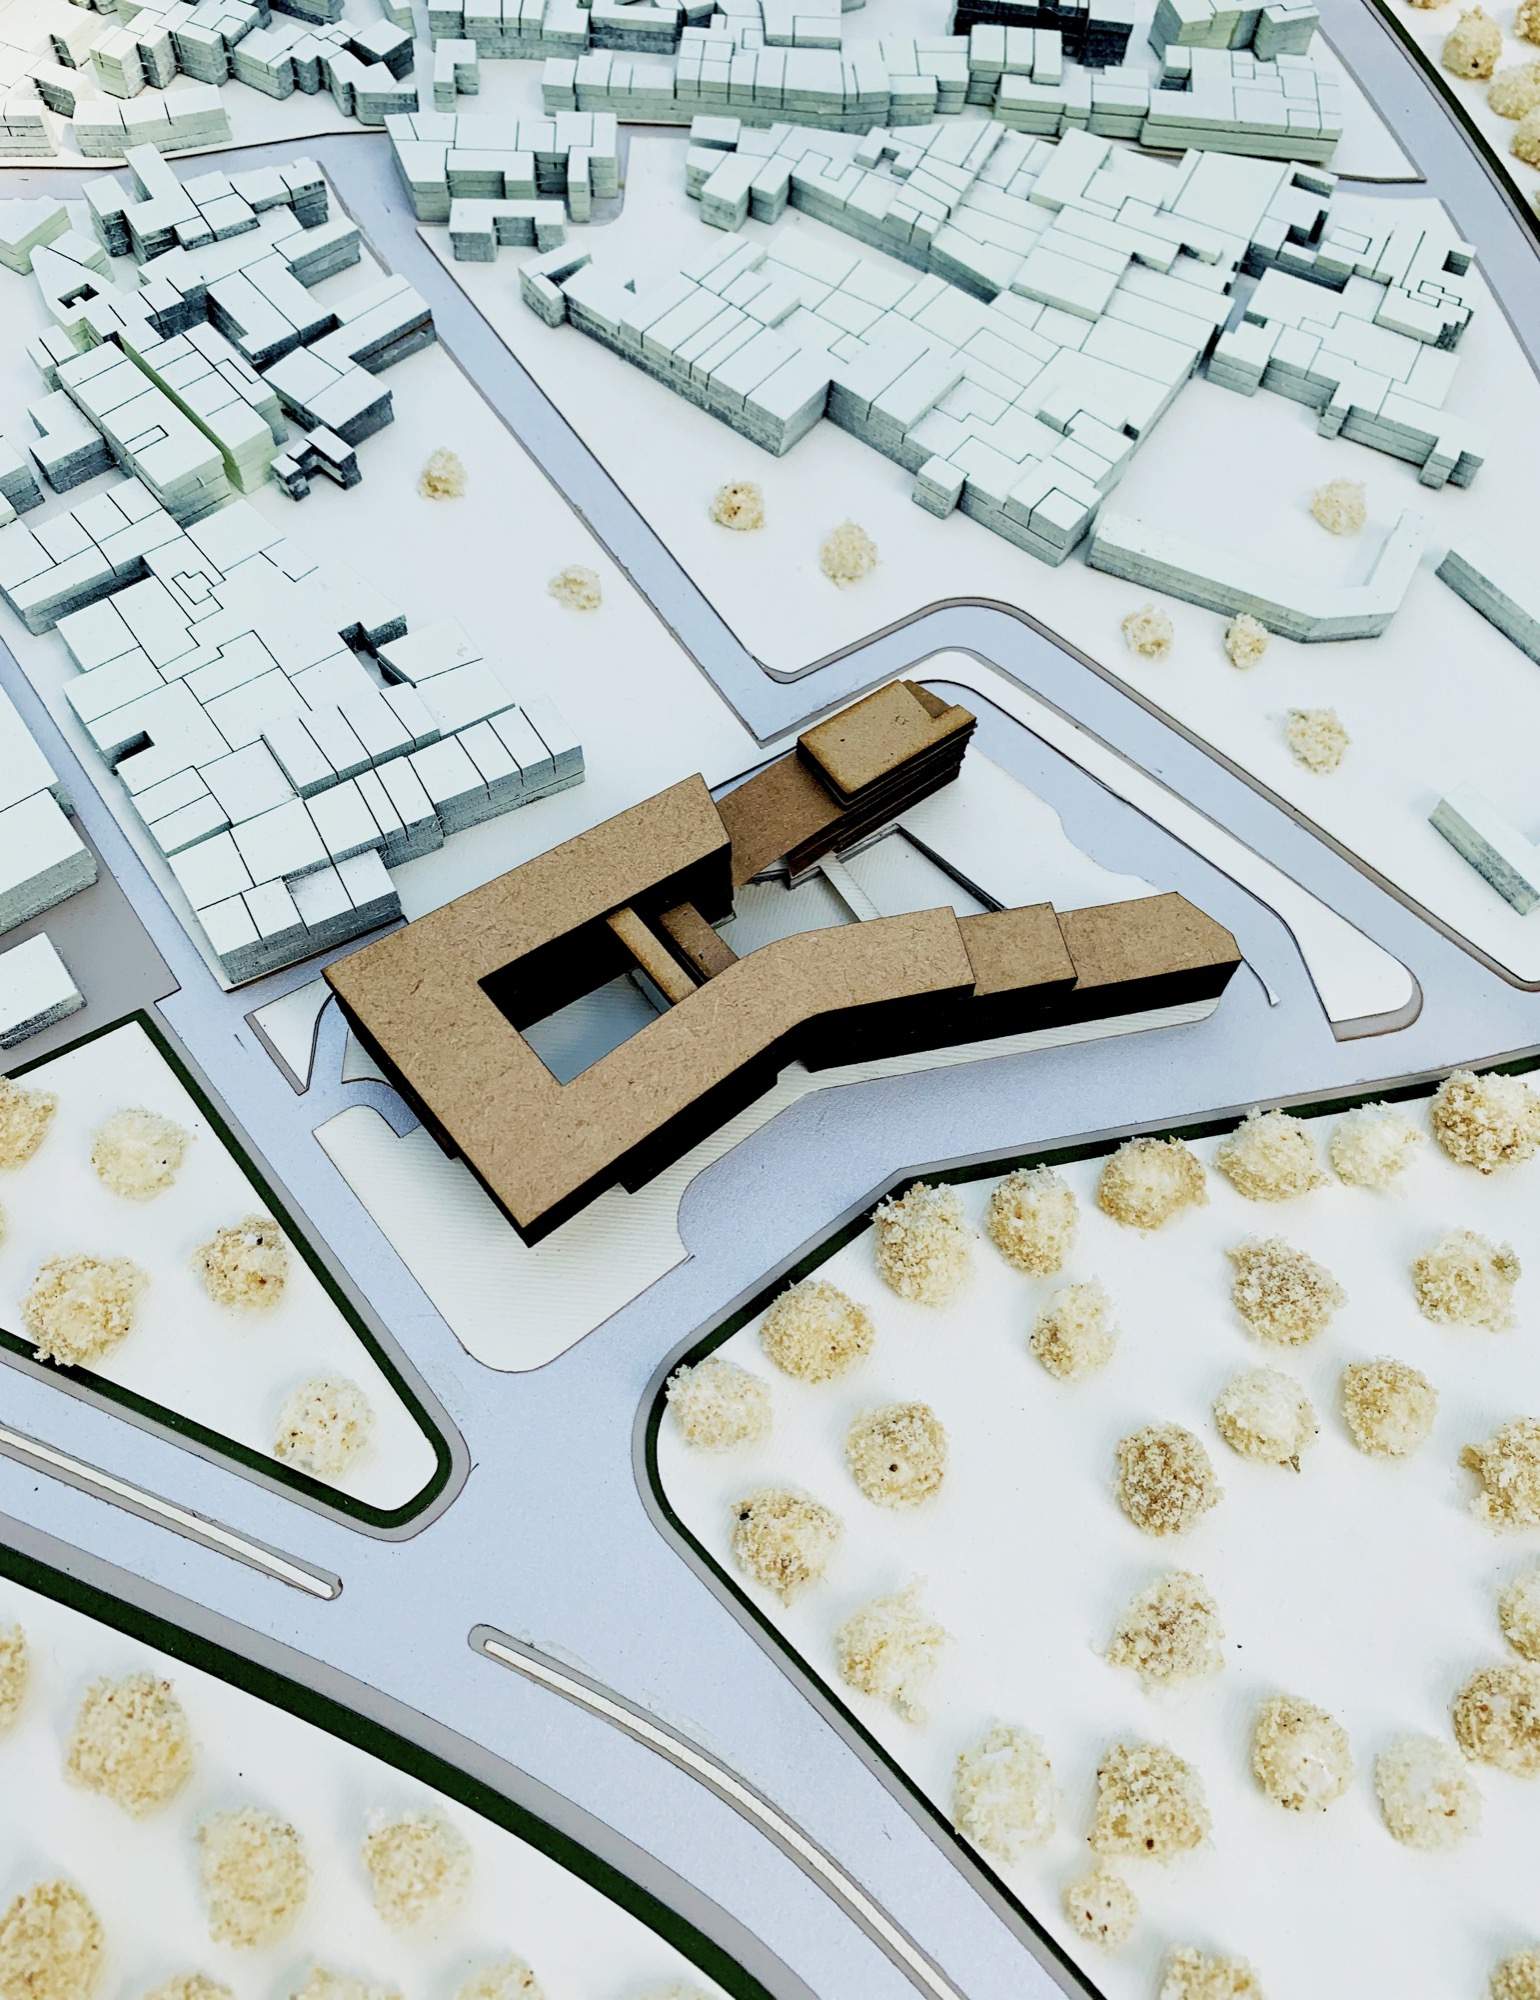 B.Arch Thesis: National Museum of Architecture, New Delhi, by Niranjan Kaur 2